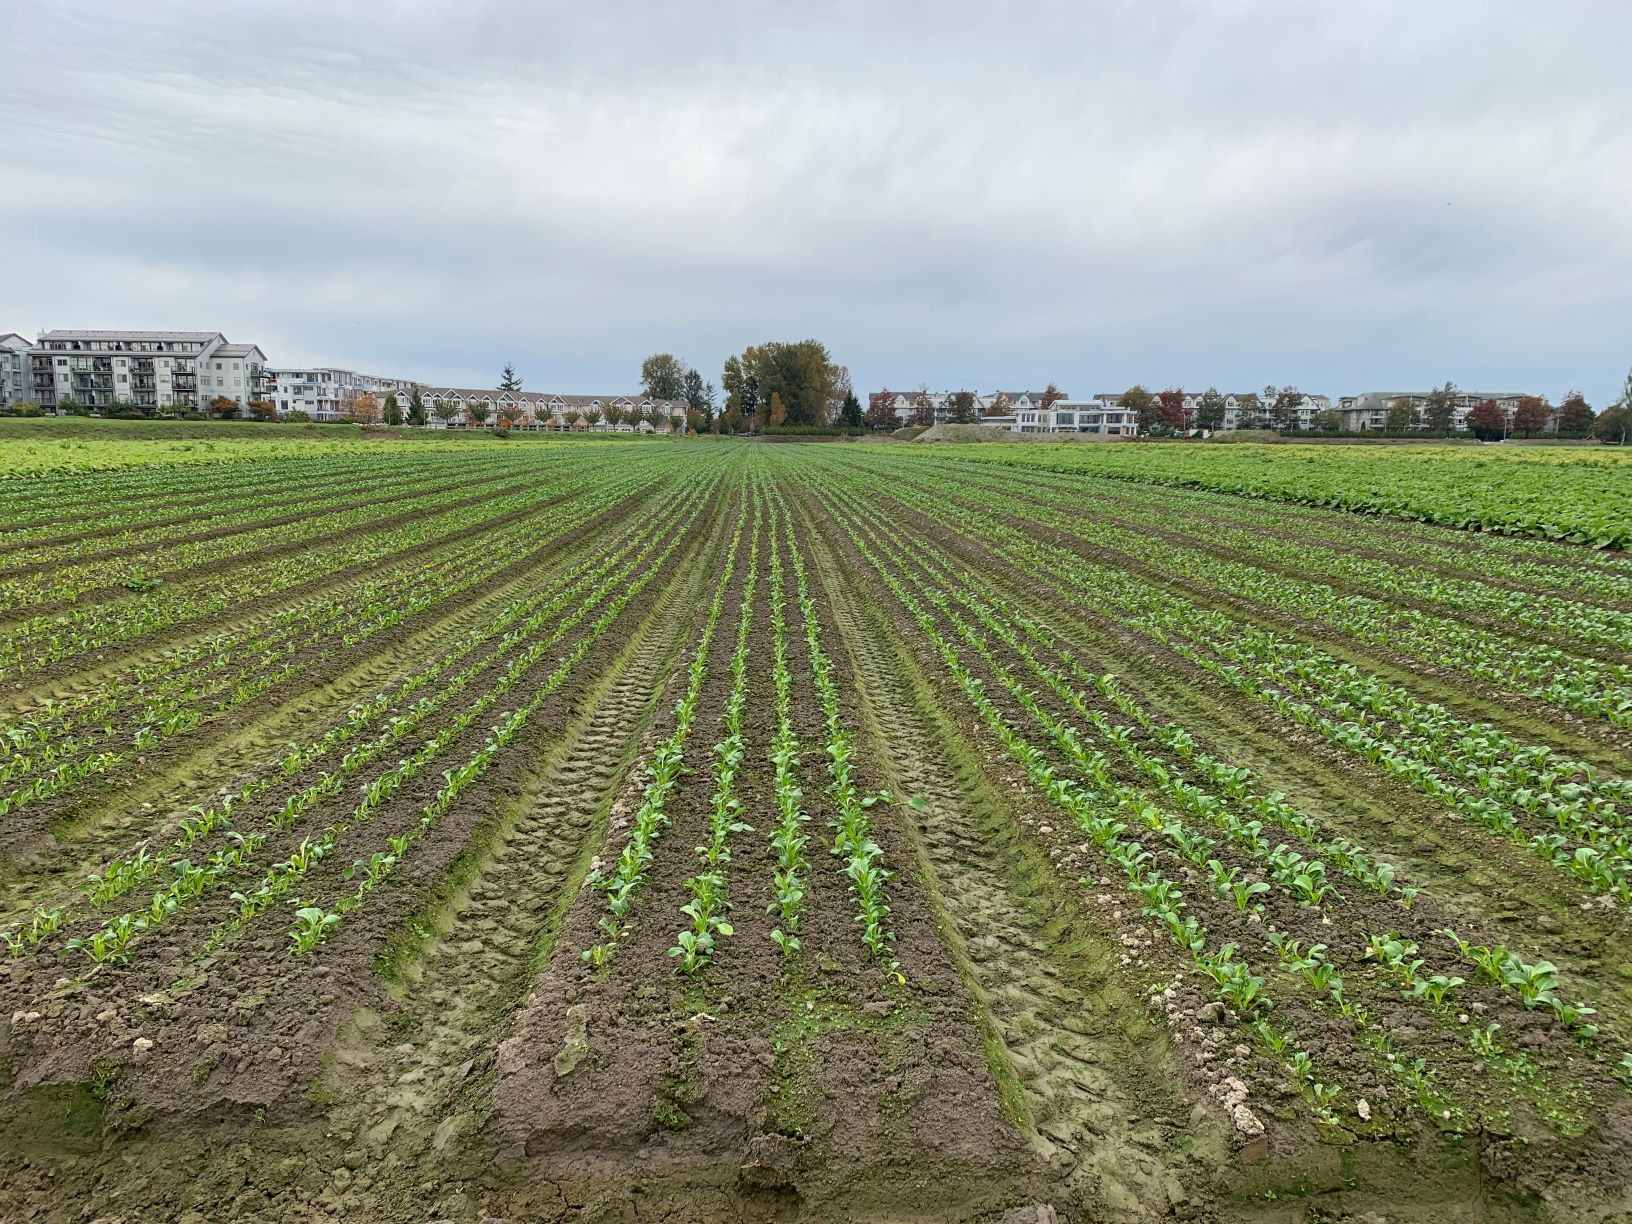 field crops growing panatch group farm job richmond vancouver bc